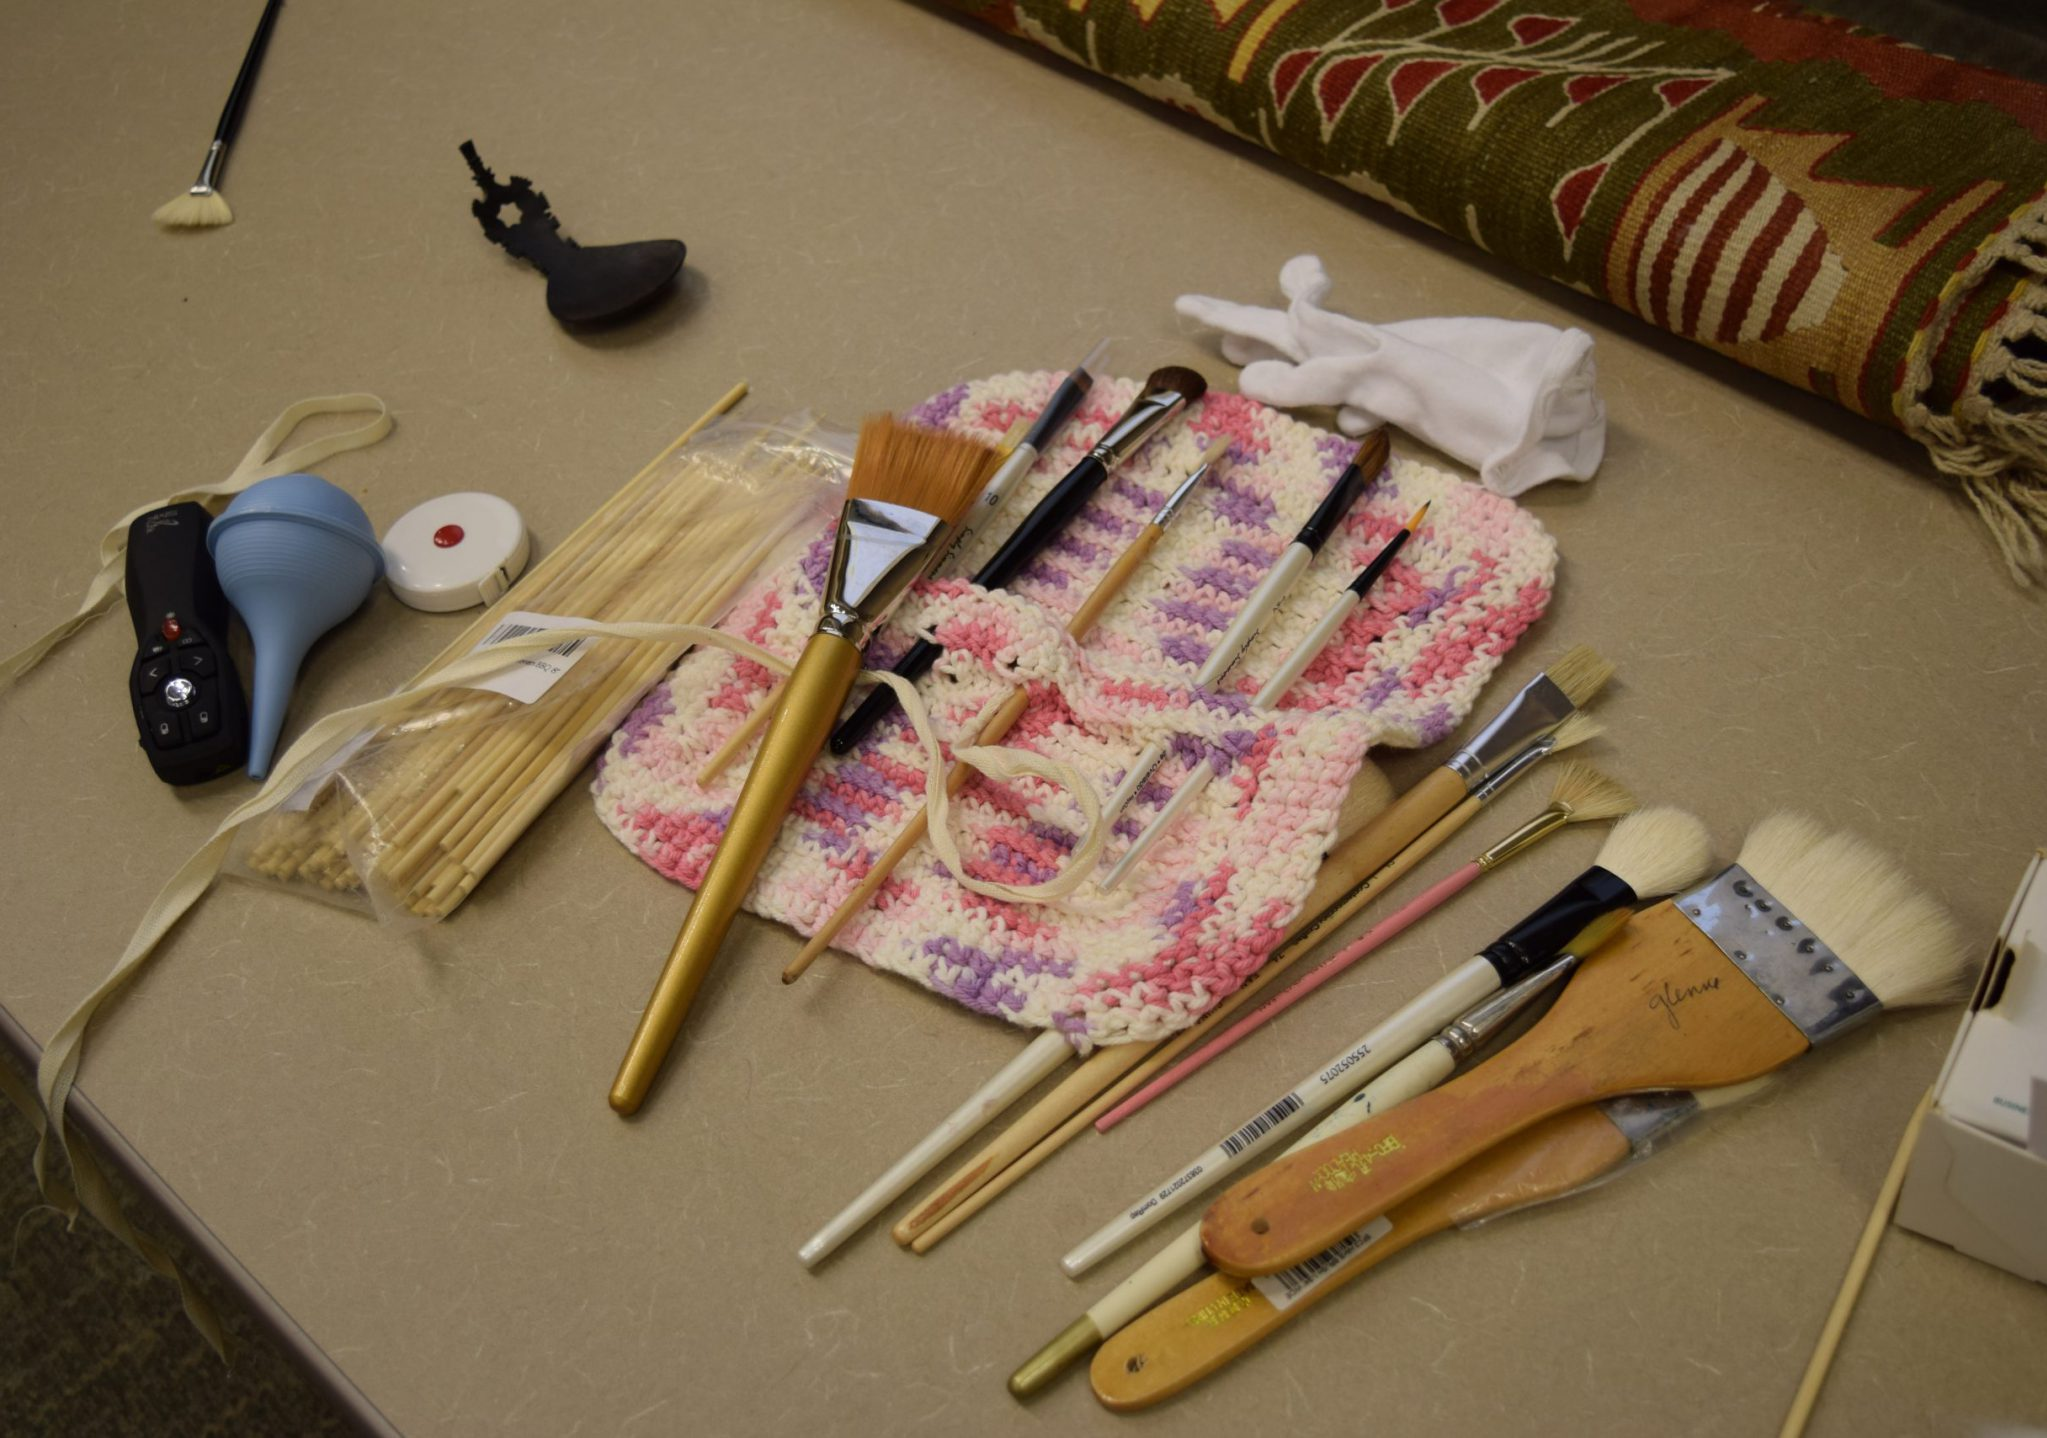 Brushes sit on a table.